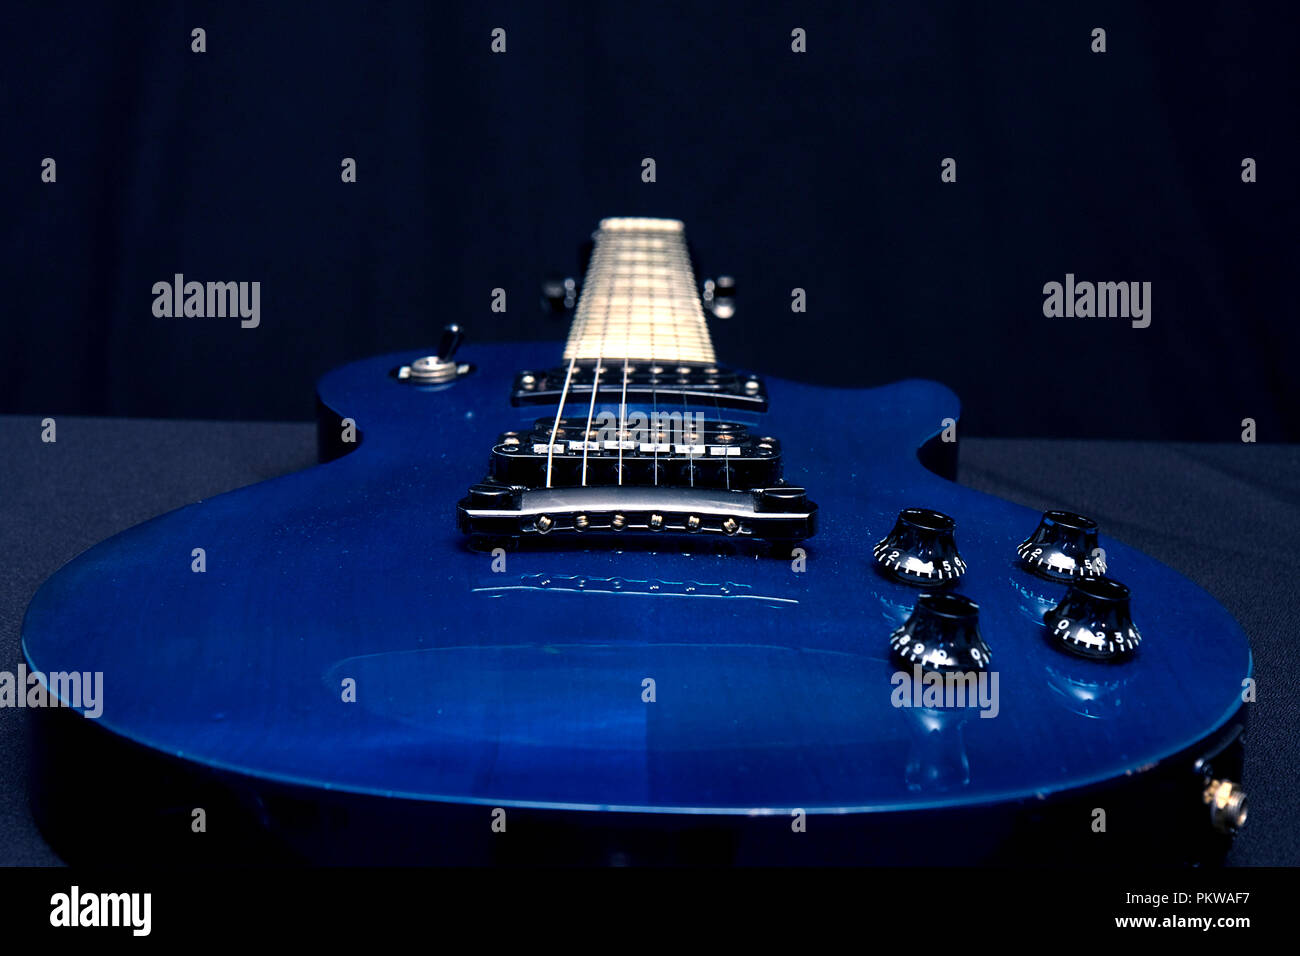 Assortment Of Electric Guitar Images Closeup Up On Black Background